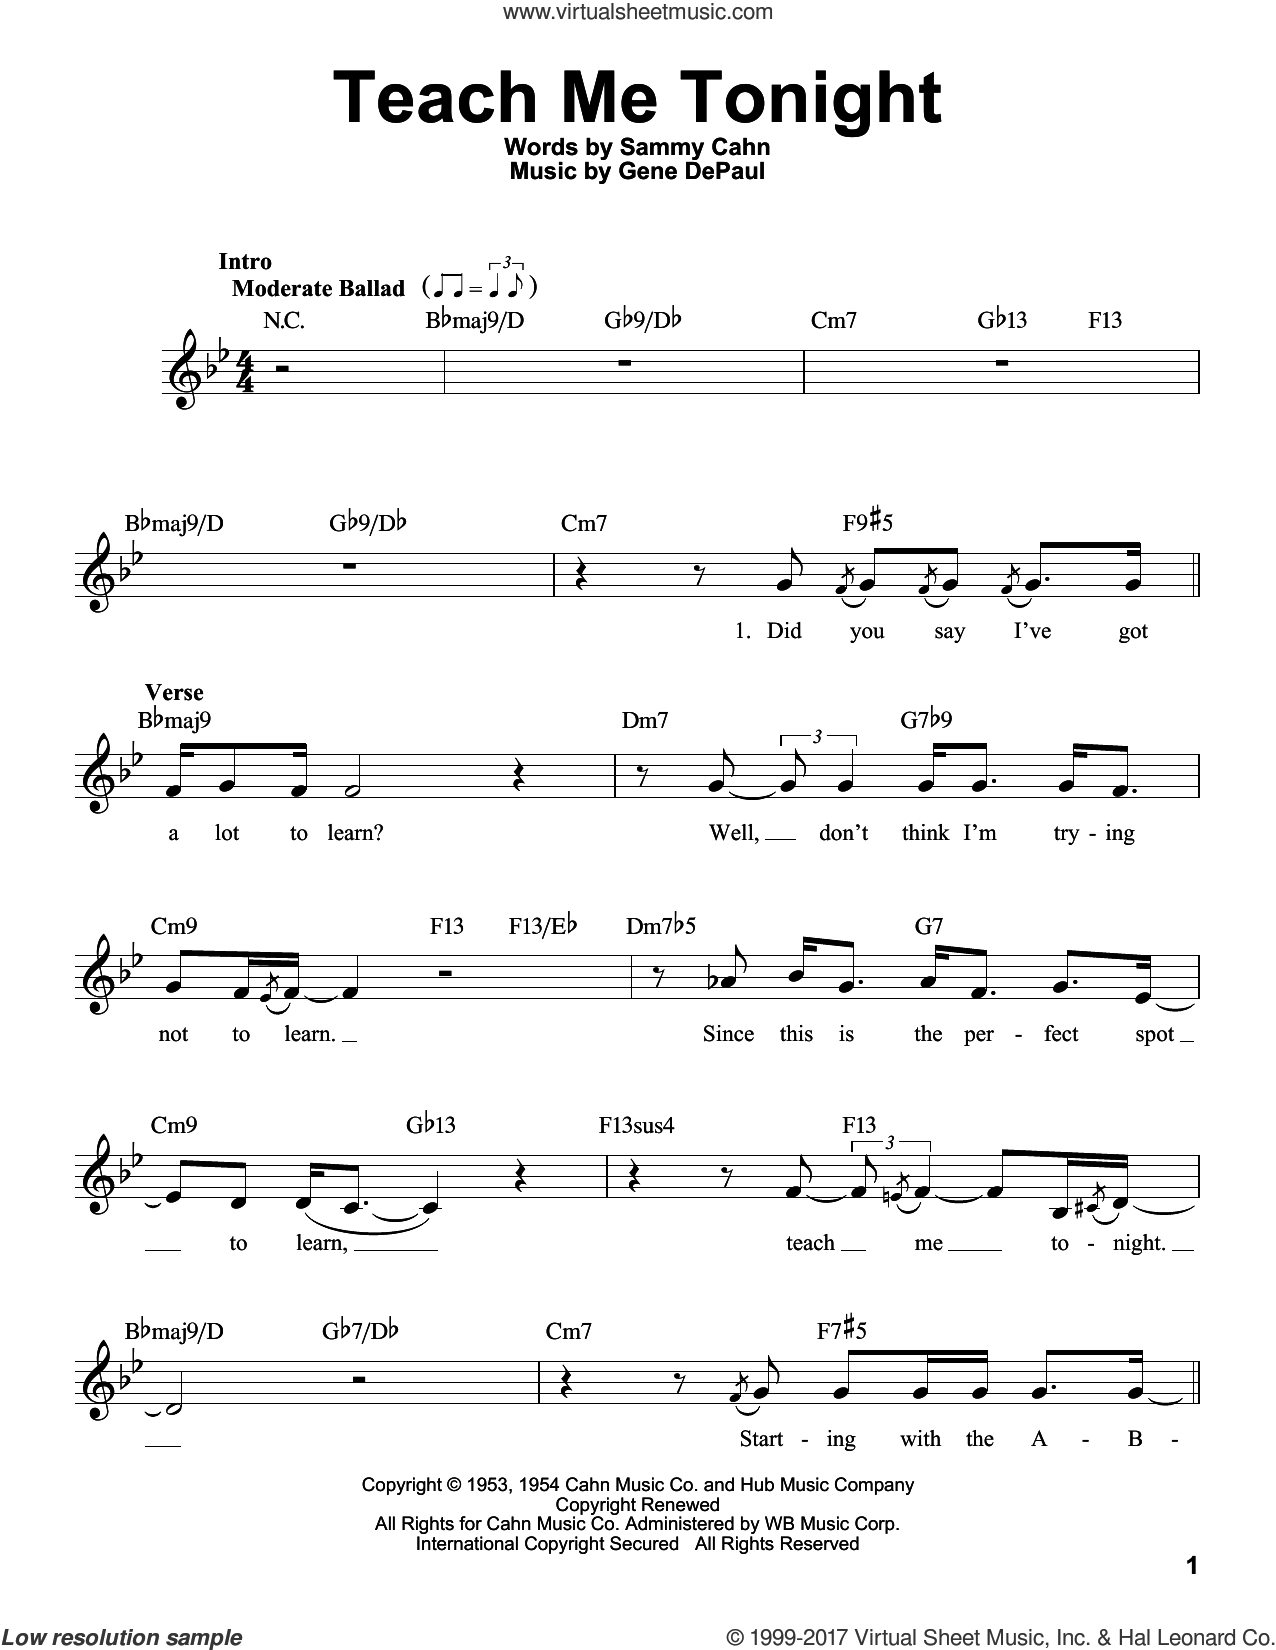 Teach Me Tonight sheet music for voice solo by Sammy Cahn and Gene DePaul, intermediate skill level